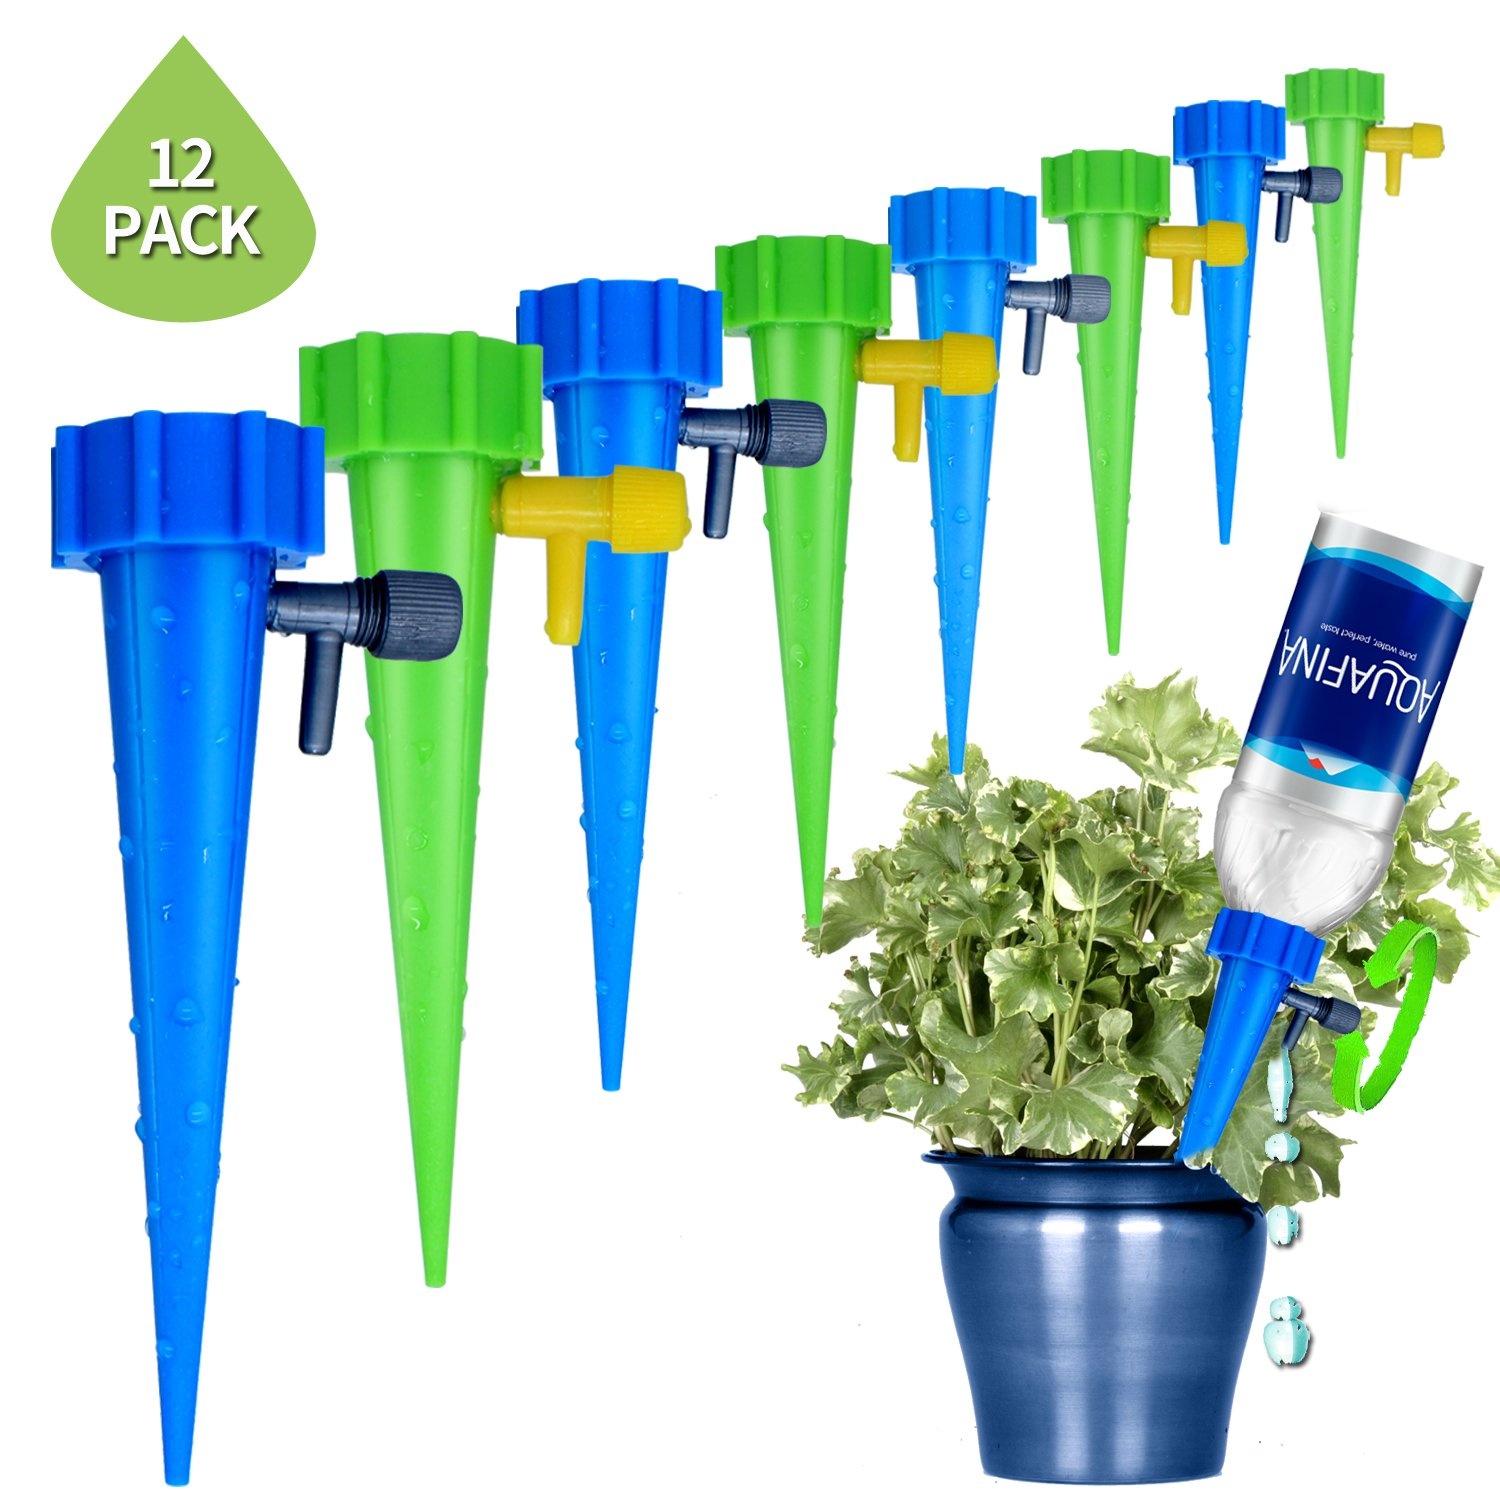 REEBENT Plant Waterer Self Watering Devices with Slow Release Control Valve Switch, Automatic Vacation self Plant Watering Spikes Globes, Self Irrigation Watering drip Bulbs System,Plant Stakes